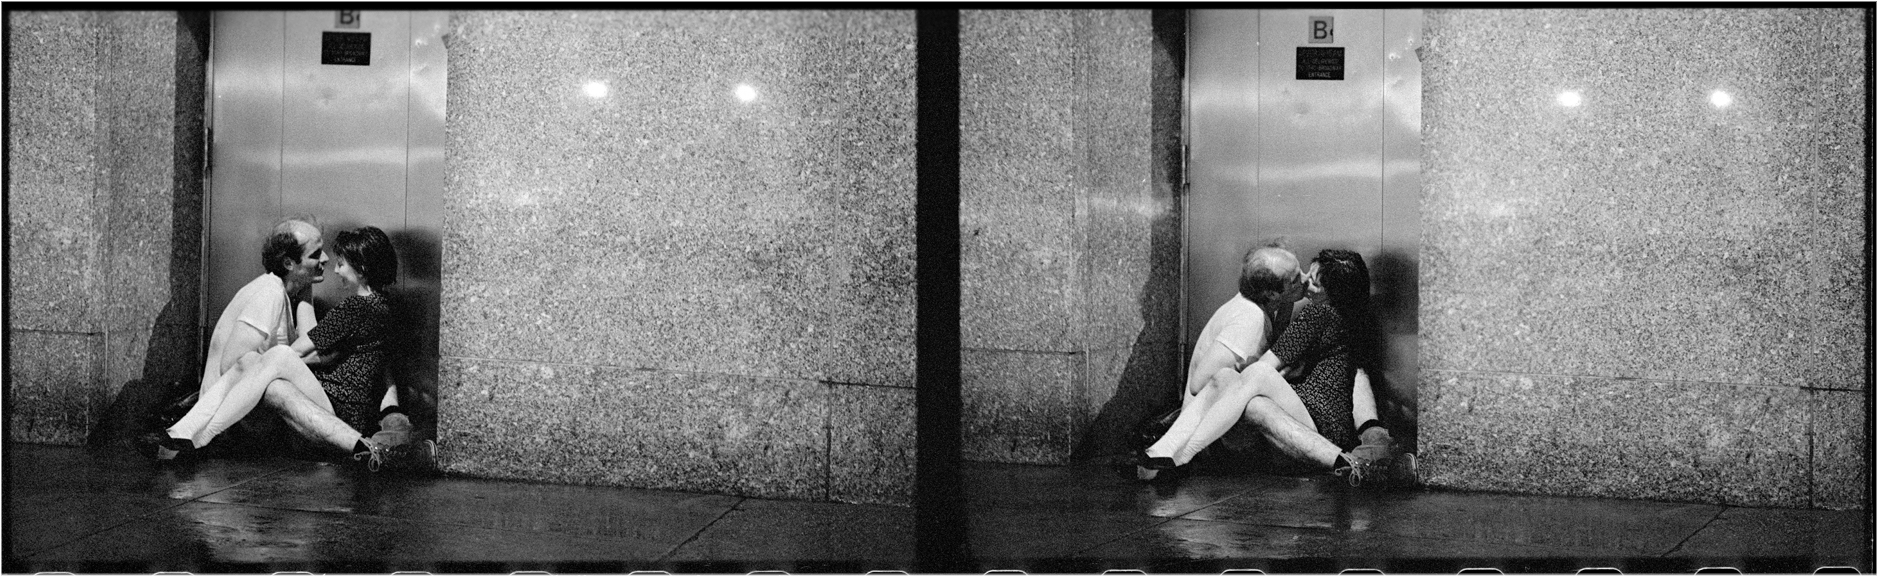 rain lovers 1989 copy u2017 black and white street photographs of new